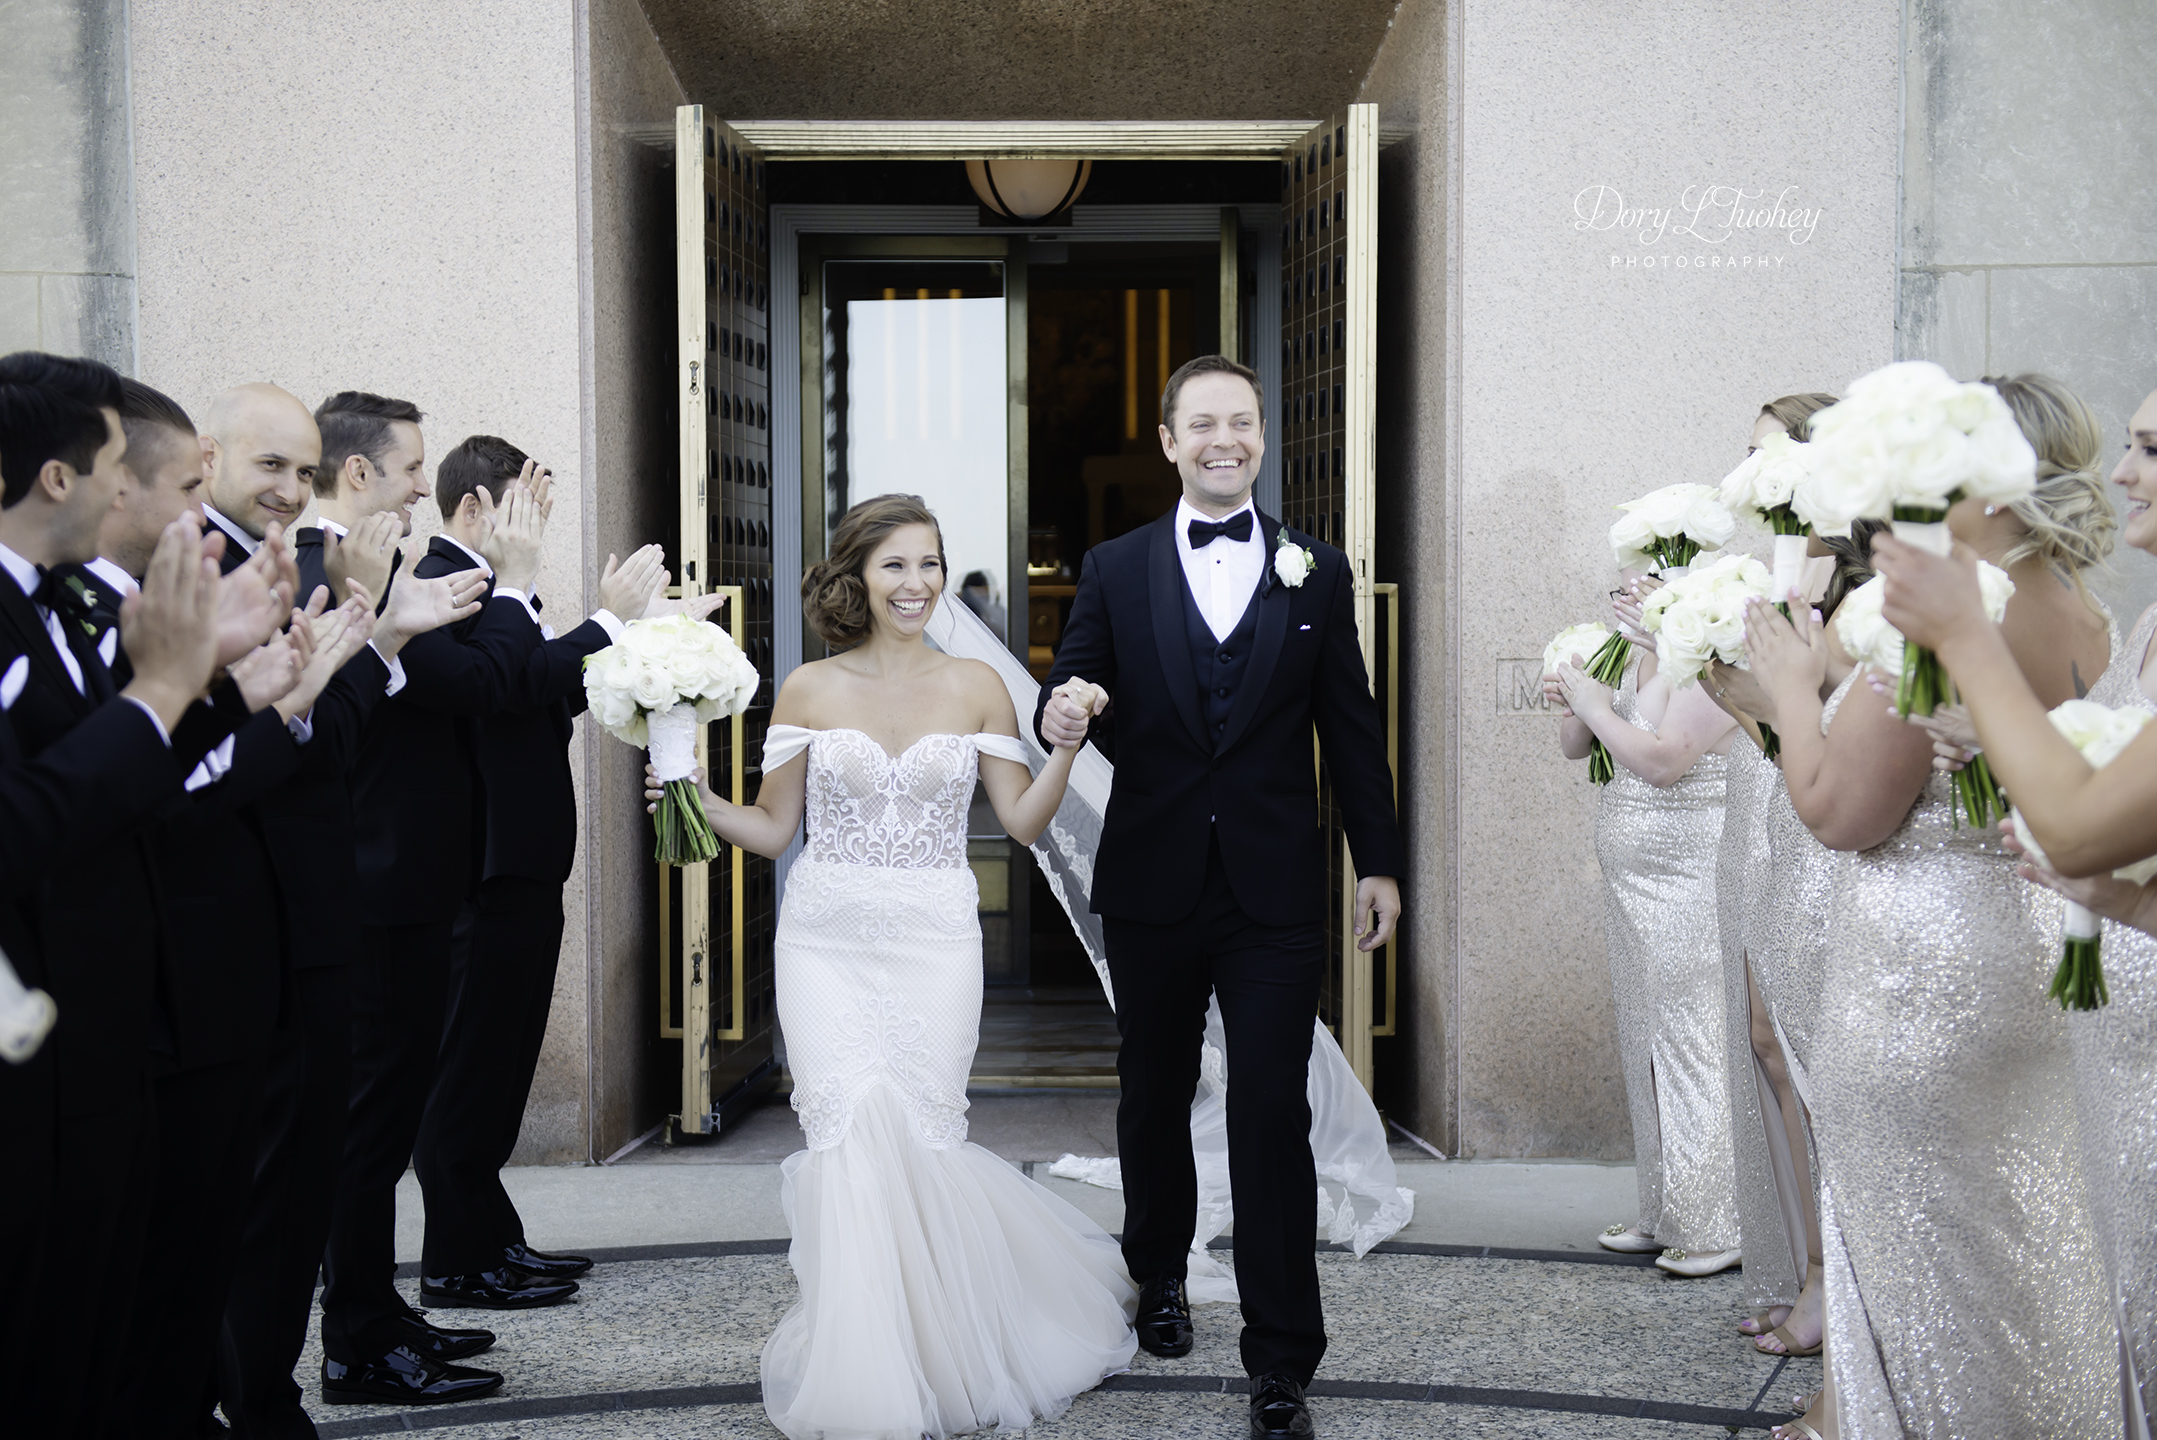 Wedding_chicago_bride_groom_photographer_wisconsin_gren_bay_wit_loyola_12.jpg